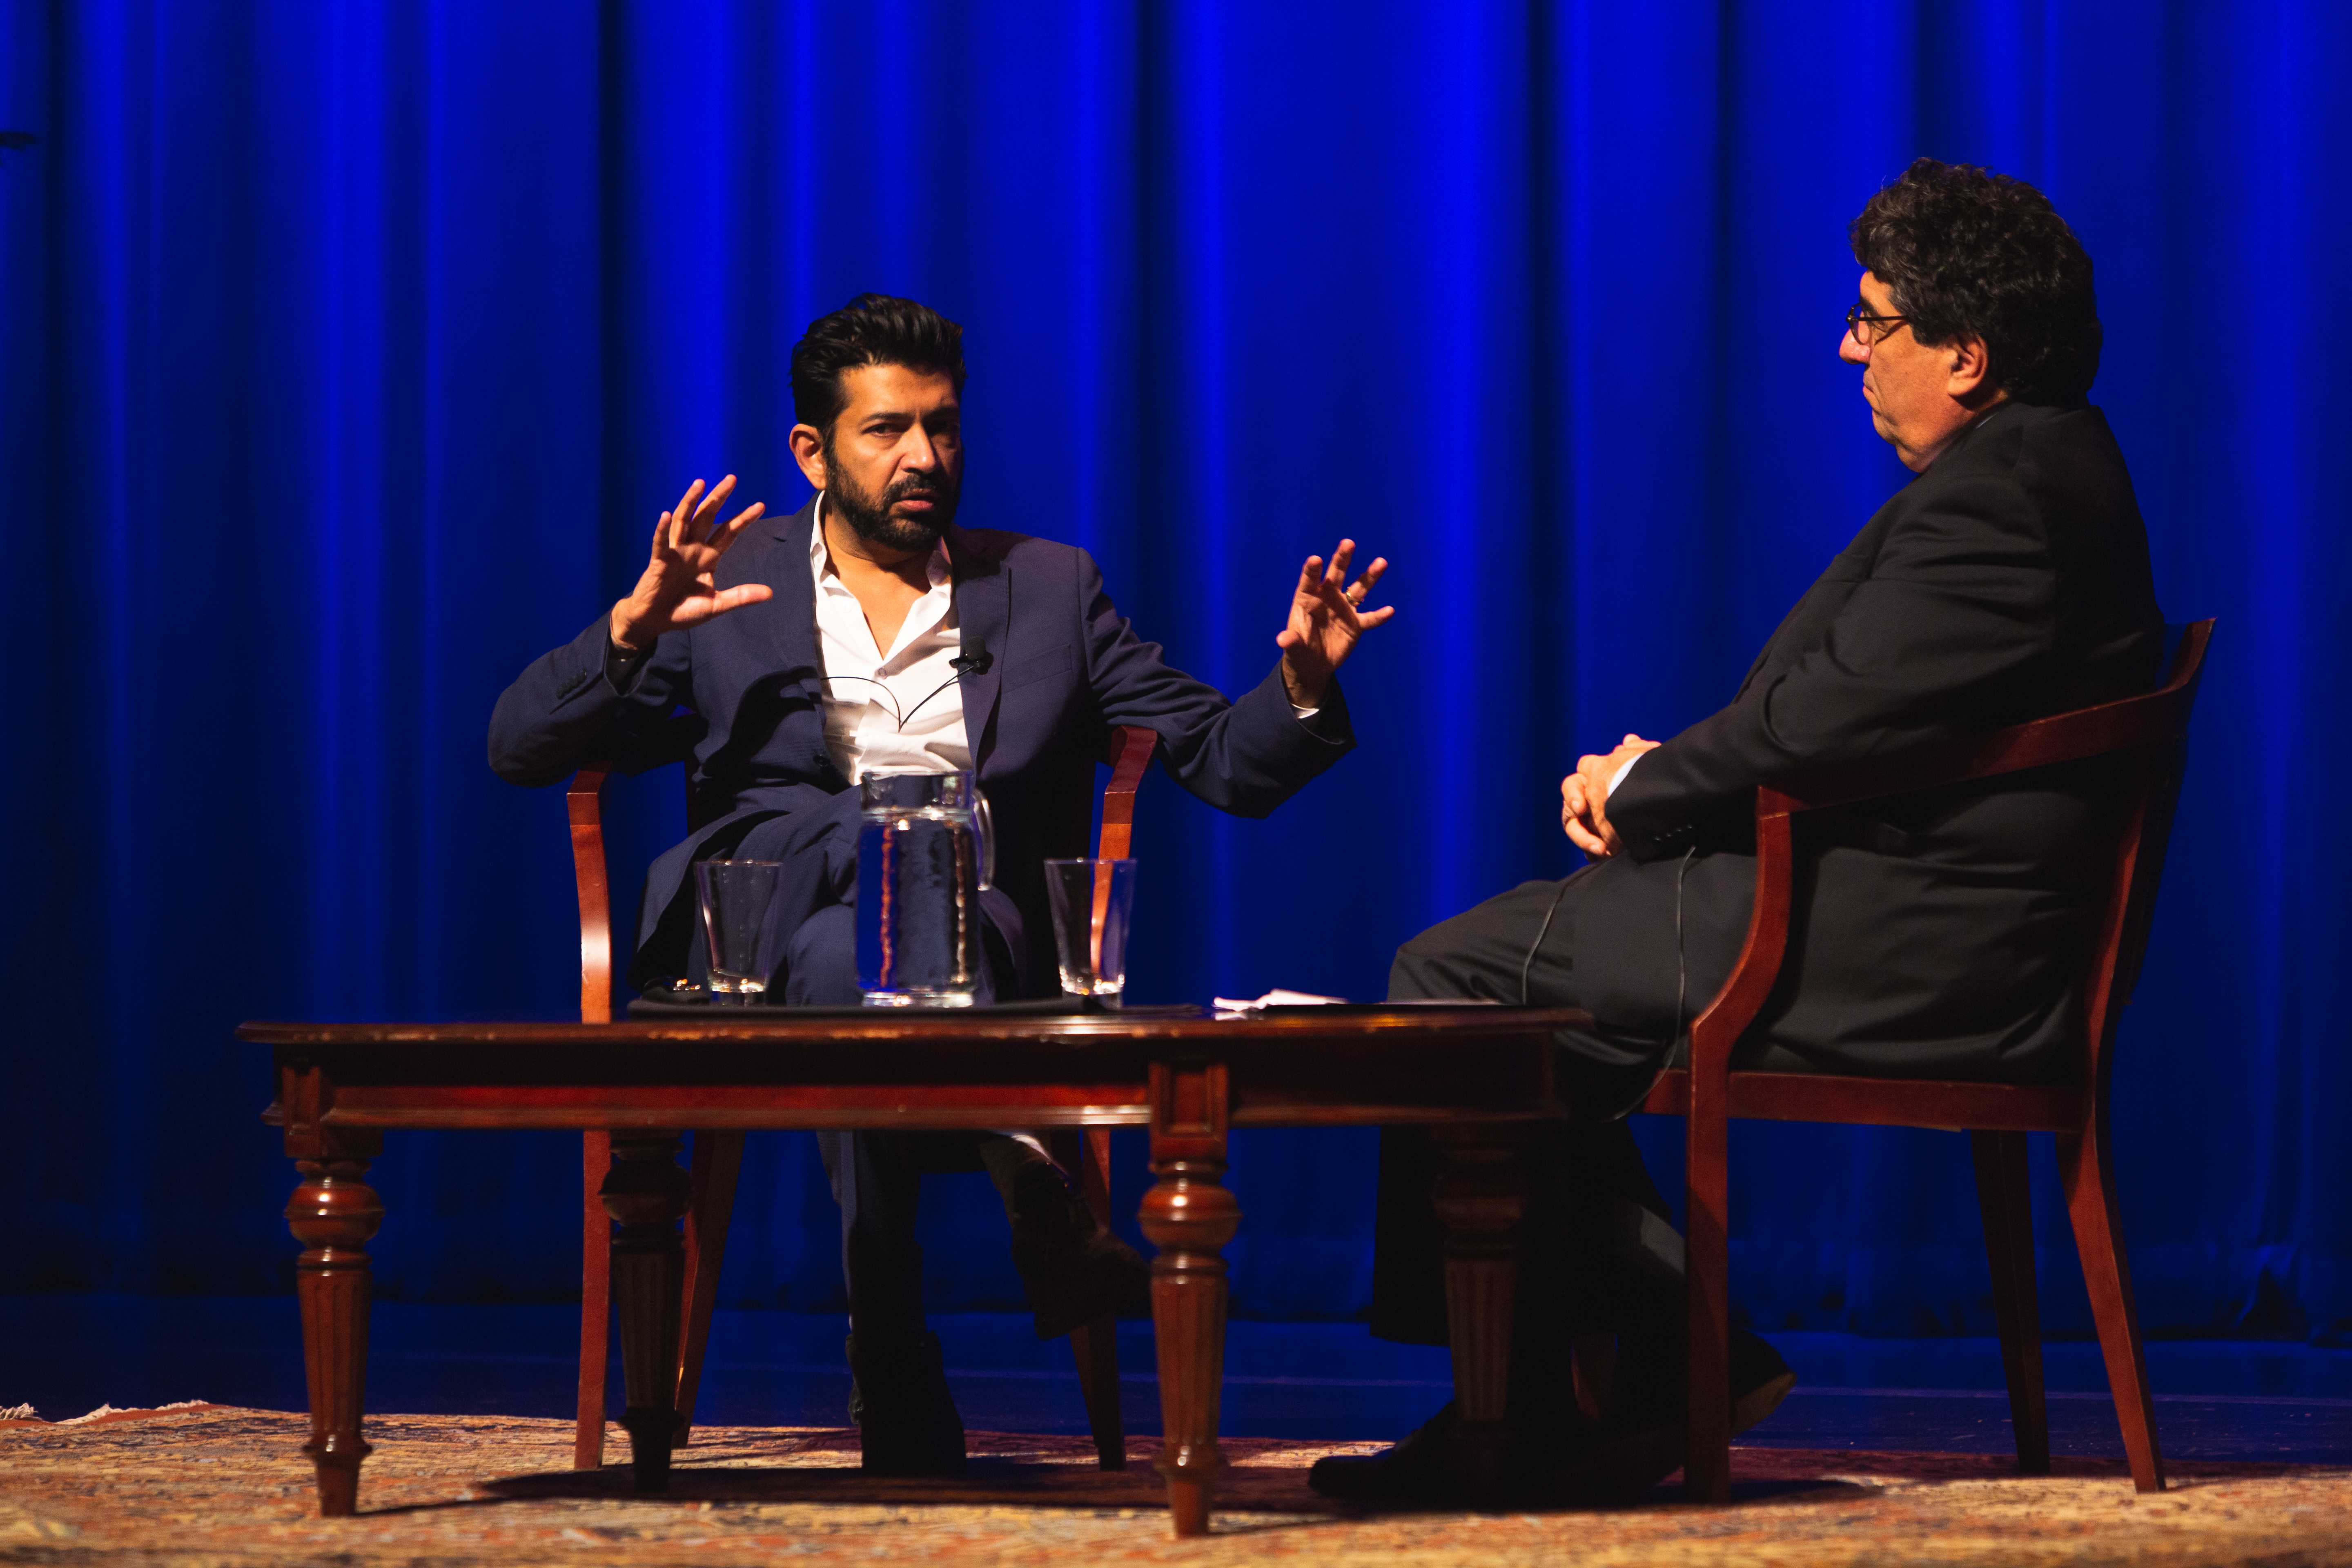 Dr. Siddhartha Mukherjee speaks at Vanderbilt